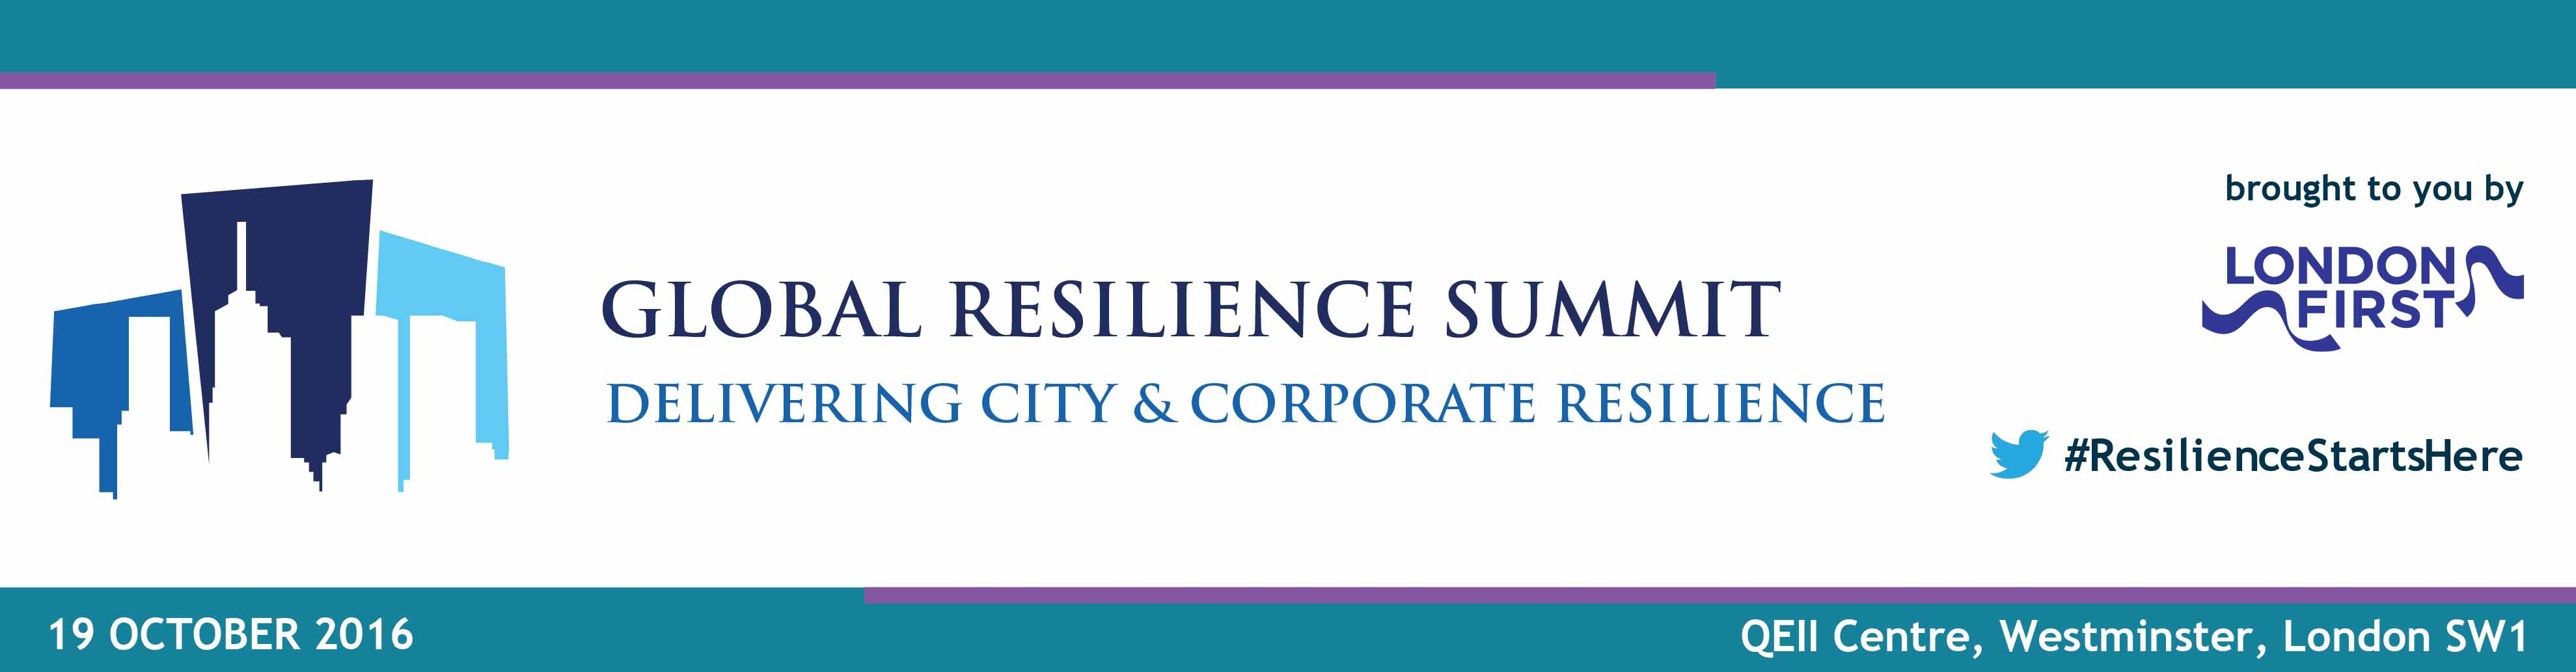 OLD: Global Resilience Summit